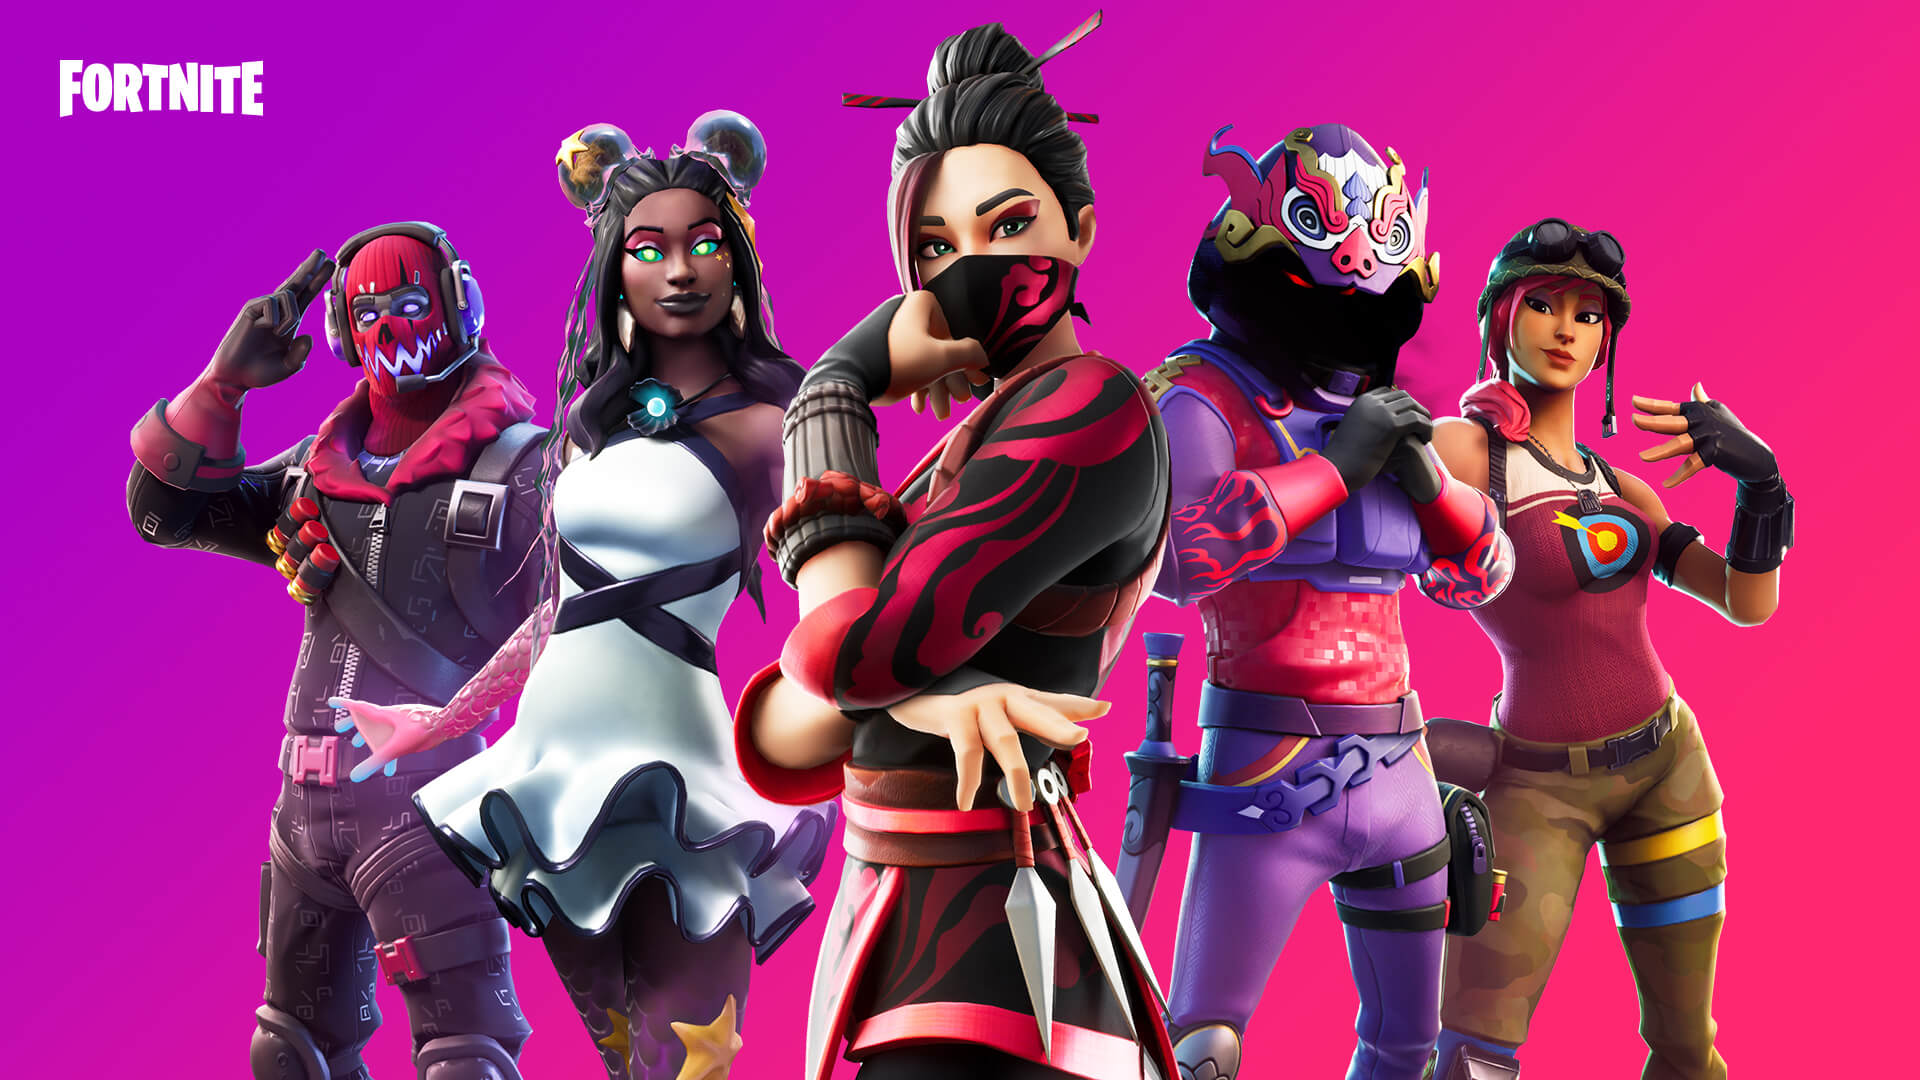 All New Stuff In Fortnite Update The Fortnite Creative Update V16 30 Includes The Save Point Device The Choppa Details About Our New Fortnite Creative Documentation Hub And More